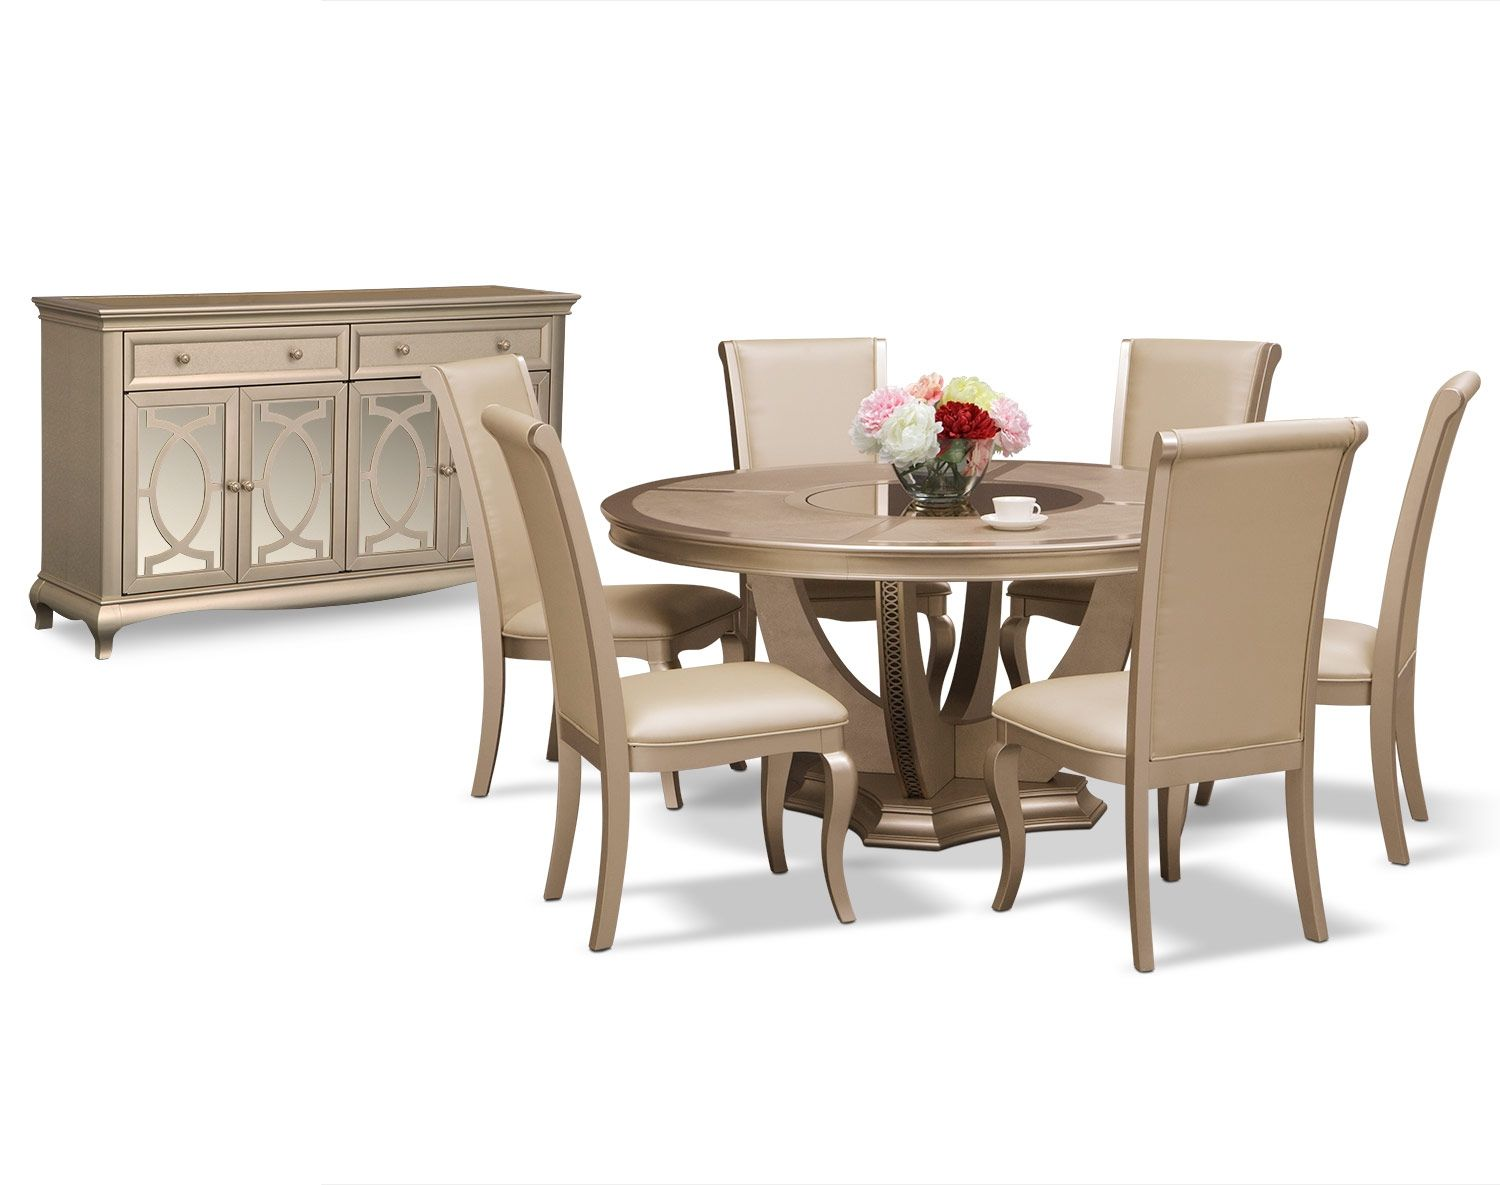 American Signature Living Room Sets Furniture Packages The Allegro Collection Ideas For